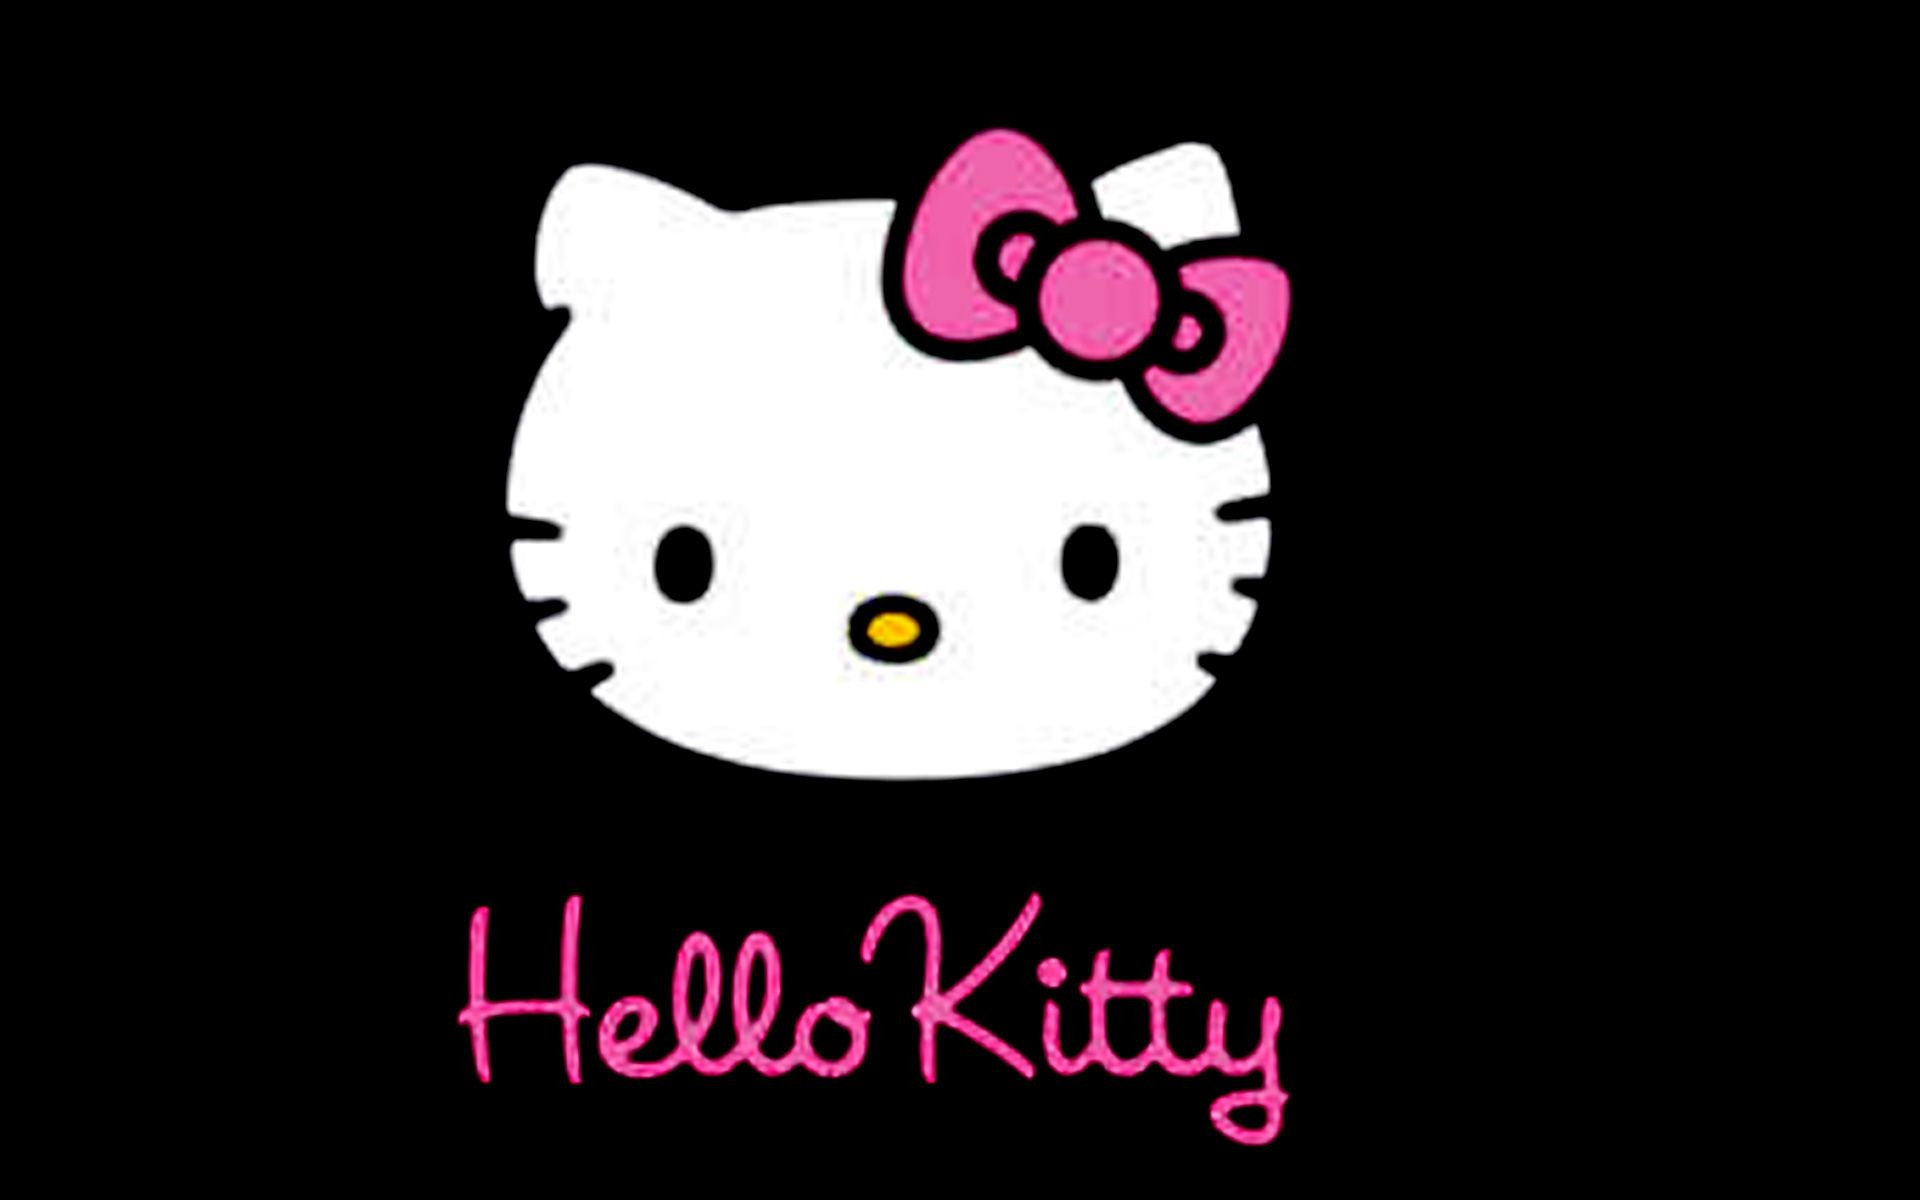 Hello Kitty Pink And Black Love Wallpaper For Android #xekd4 .